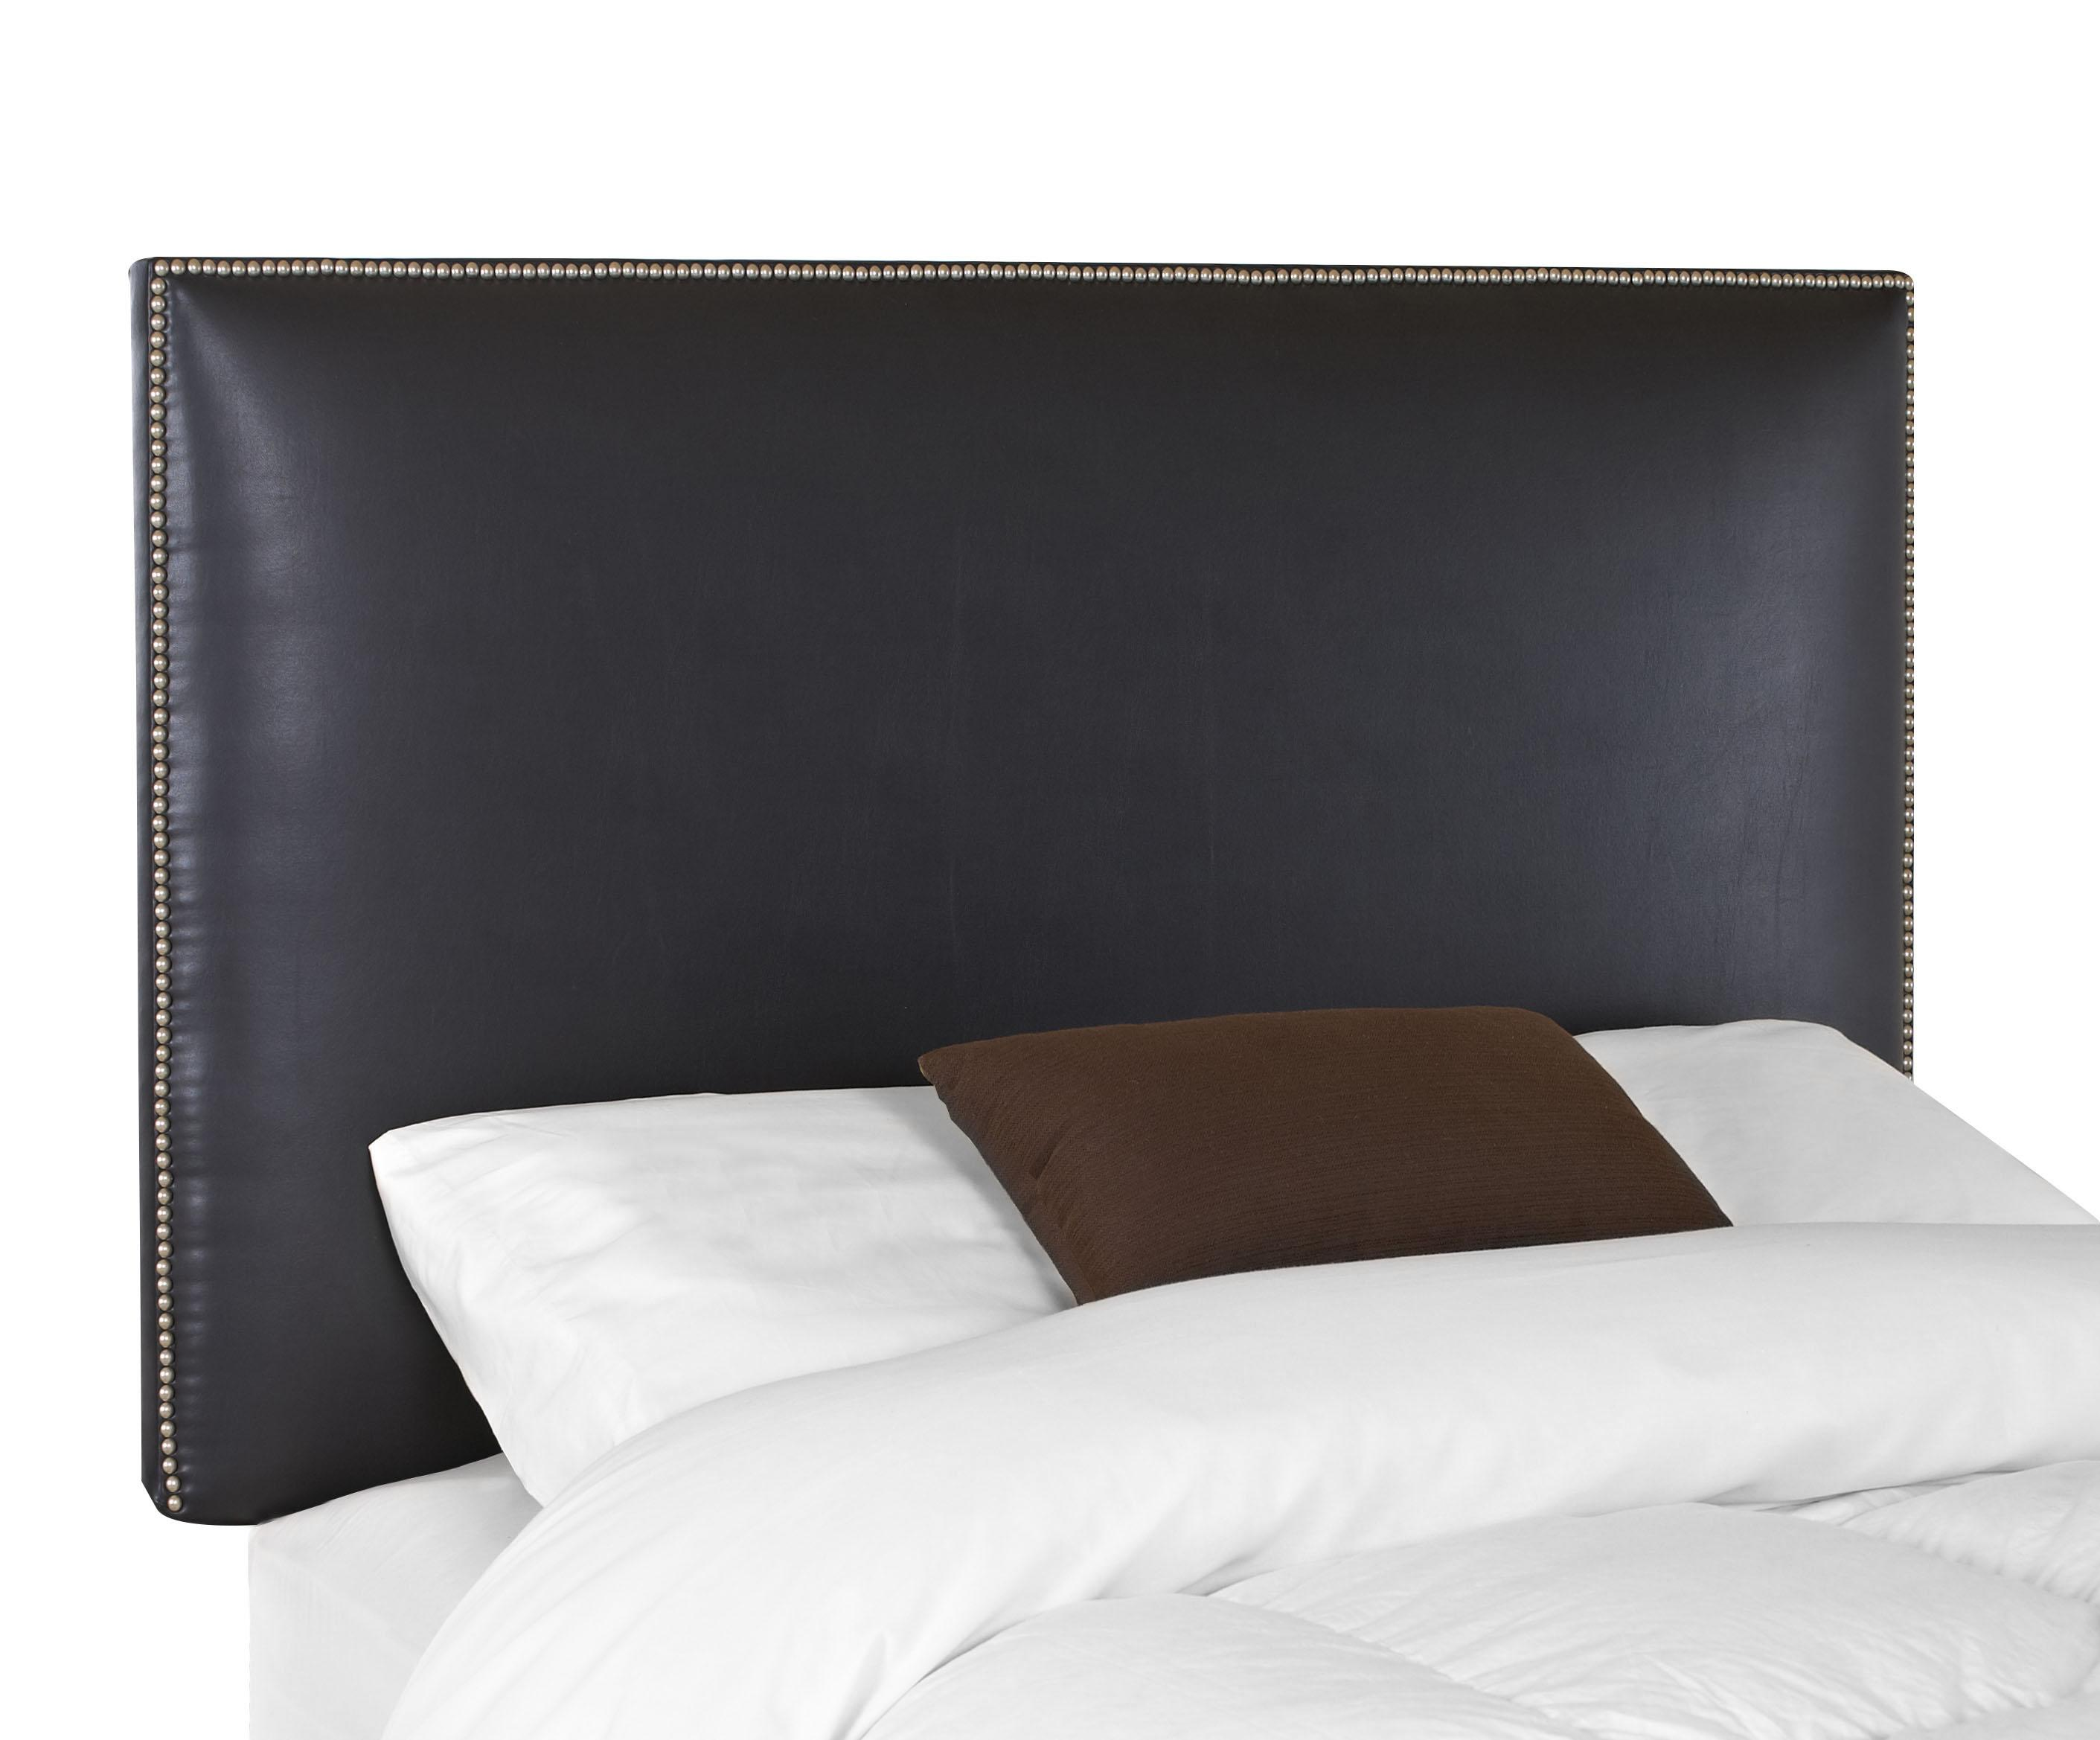 Upholstered Beds and Headboards Glade King Upholstered Headboard by Klaussner at Johnny Janosik